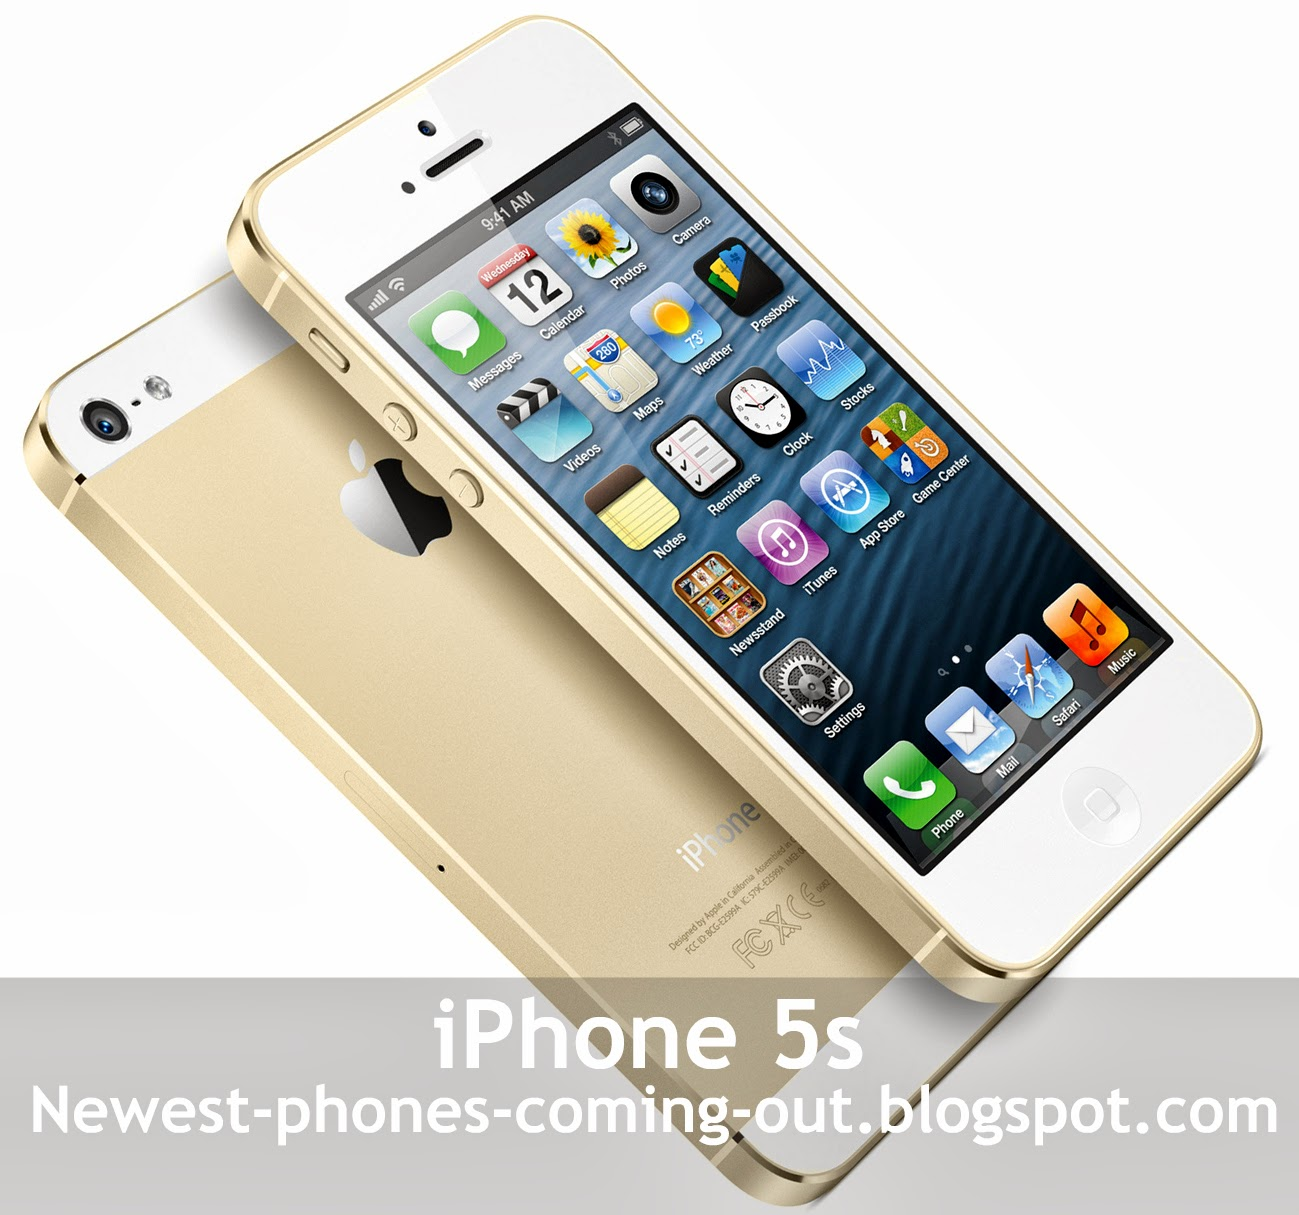 IPhone 5S New Phone Coming Out